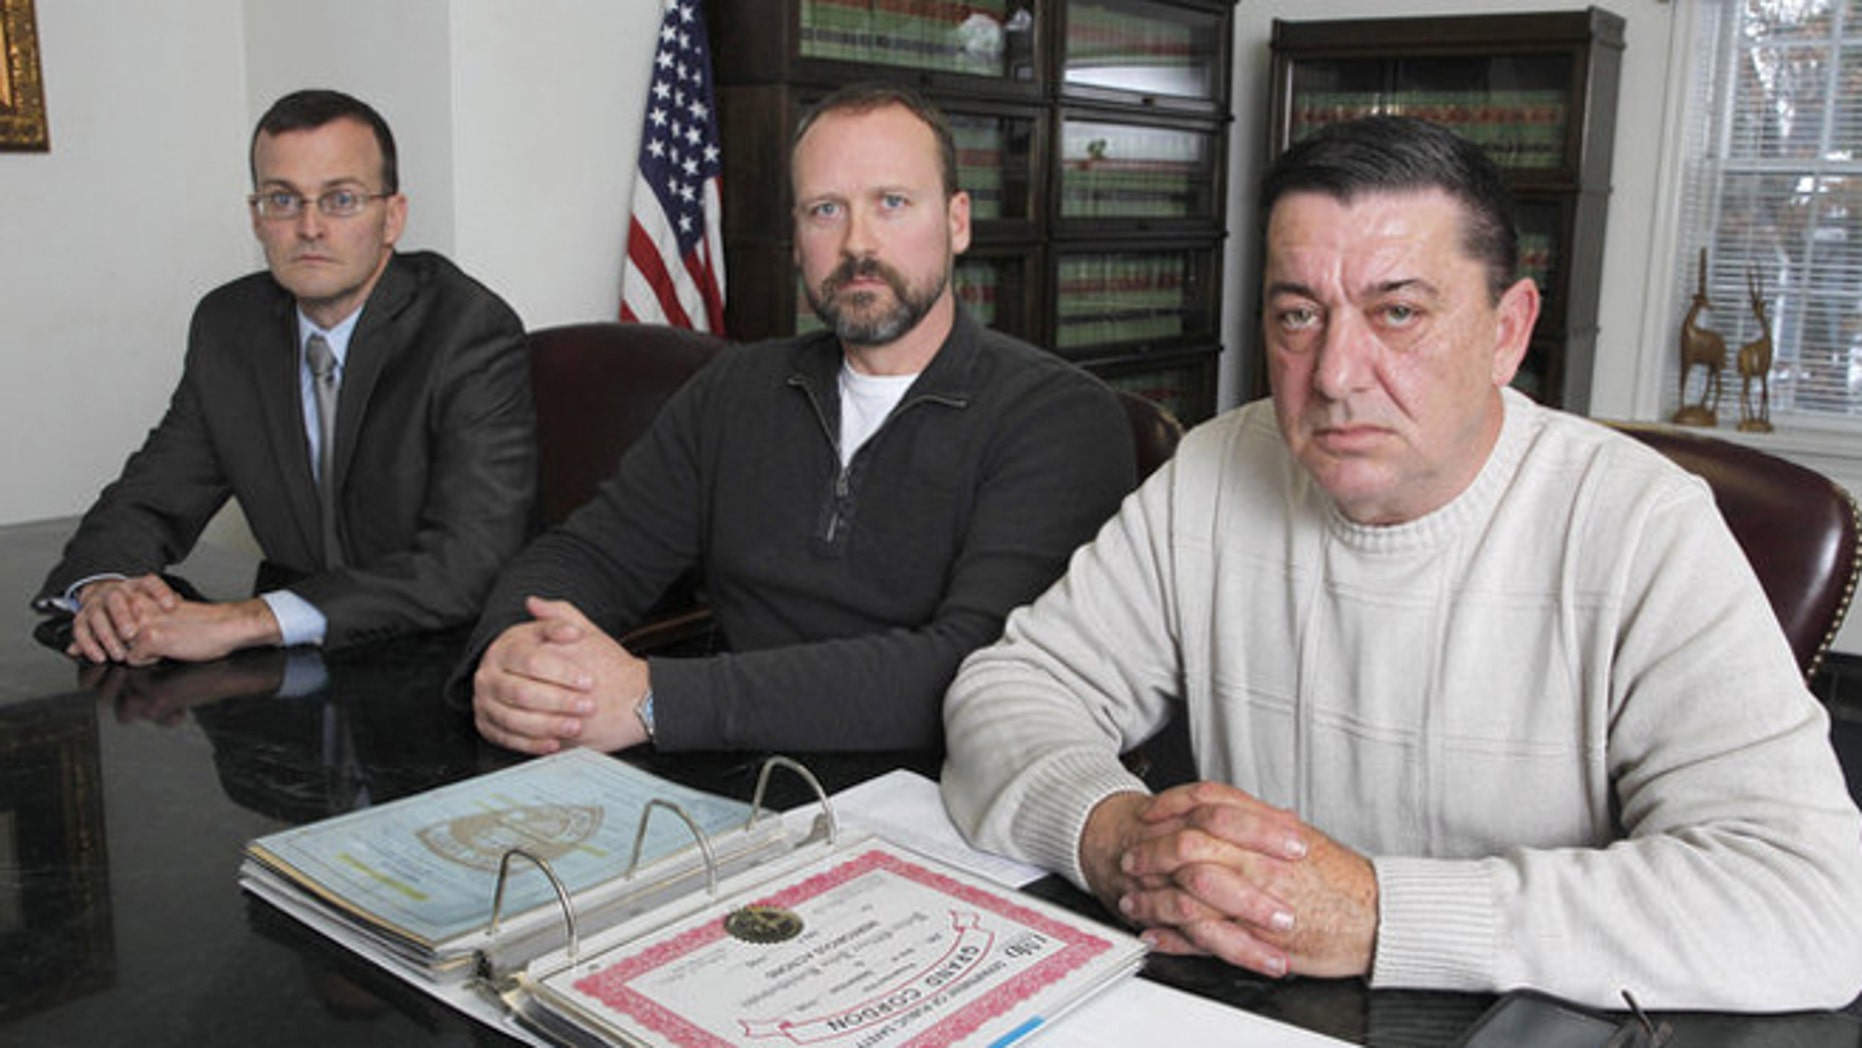 Attorney Thomas Roughneen,with clients, retired public university police officers Robert Dunsmuir and John Kotchkowski. (Jerry McCrea | For NJ Advance Media)